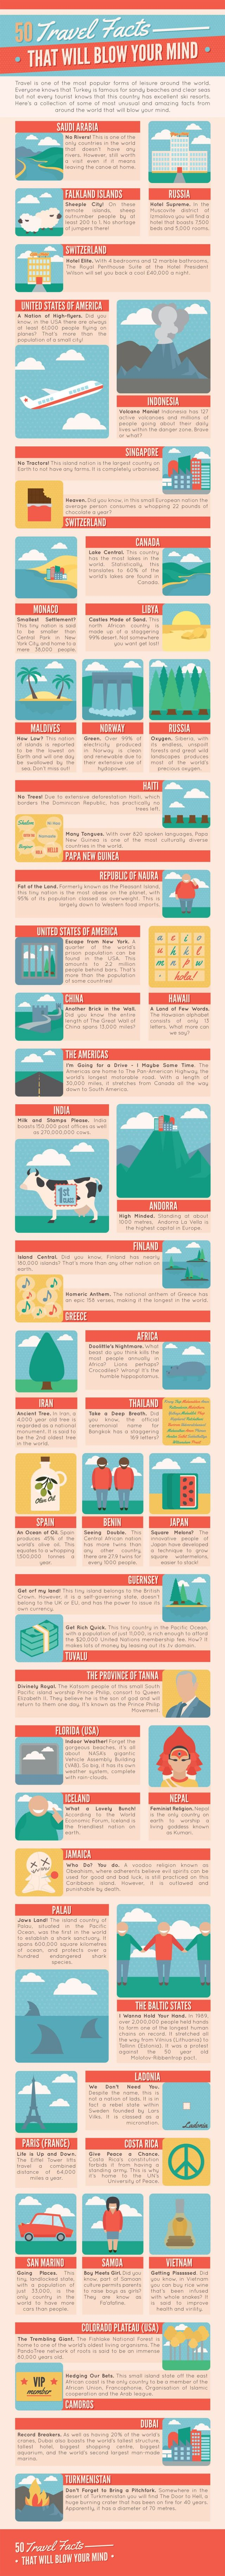 50 Travel Facts That Will Blow Your Mind #infographic